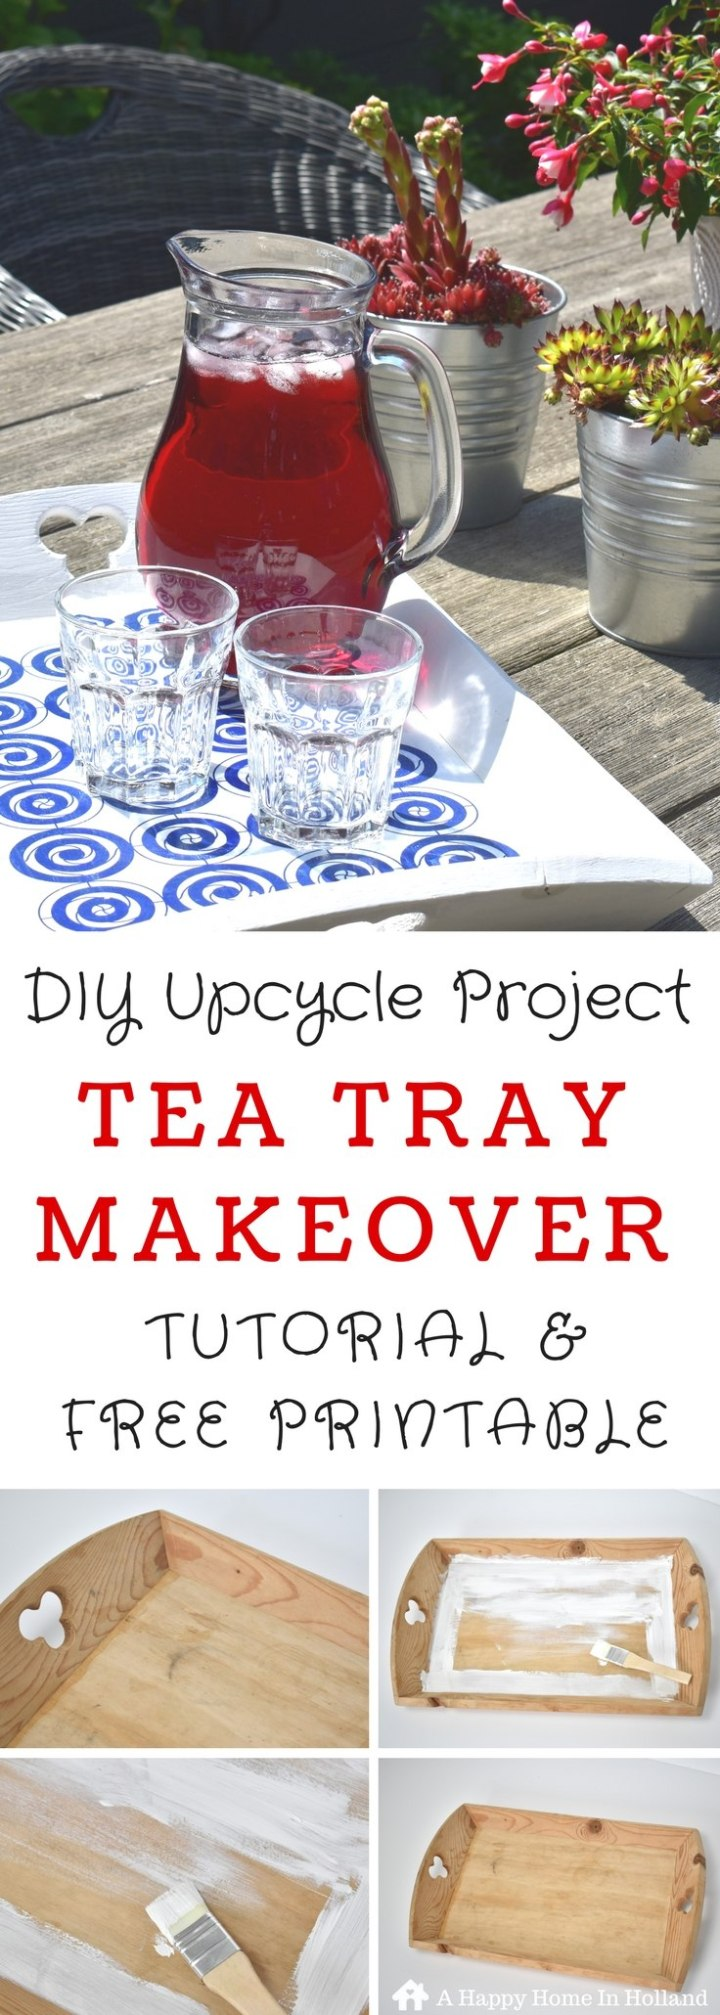 DIY Tray Makeover - Modern DIY Upcycle Project Idea Using Free Pattern Paper Printable & Mod Podge